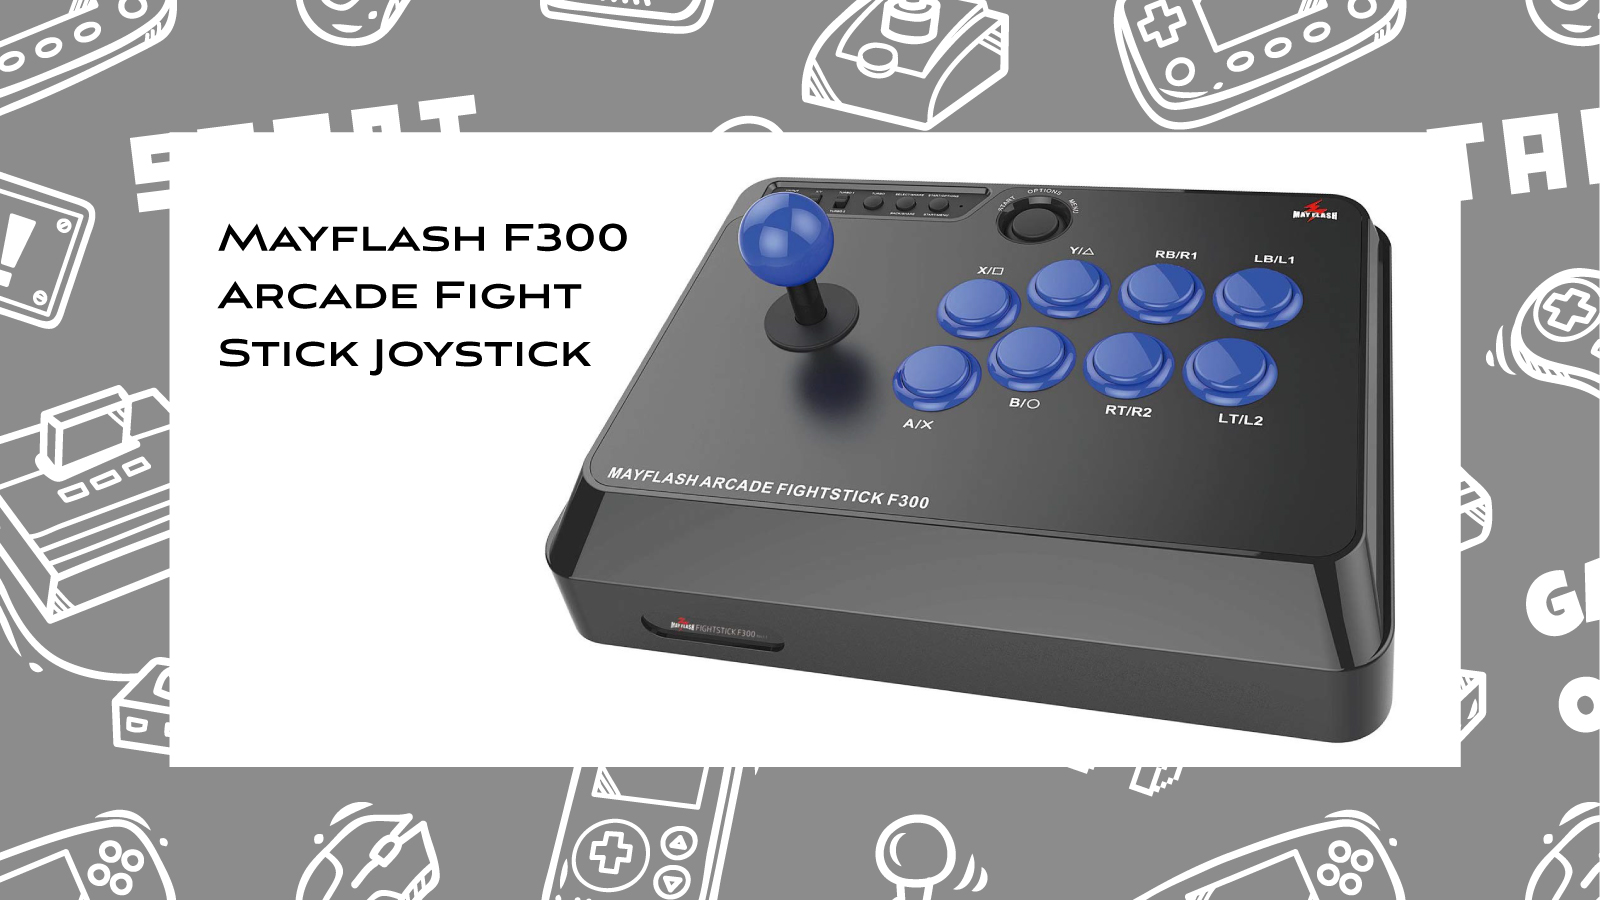 Joystick Review: Mayflash F300 Arcade Fight Stick